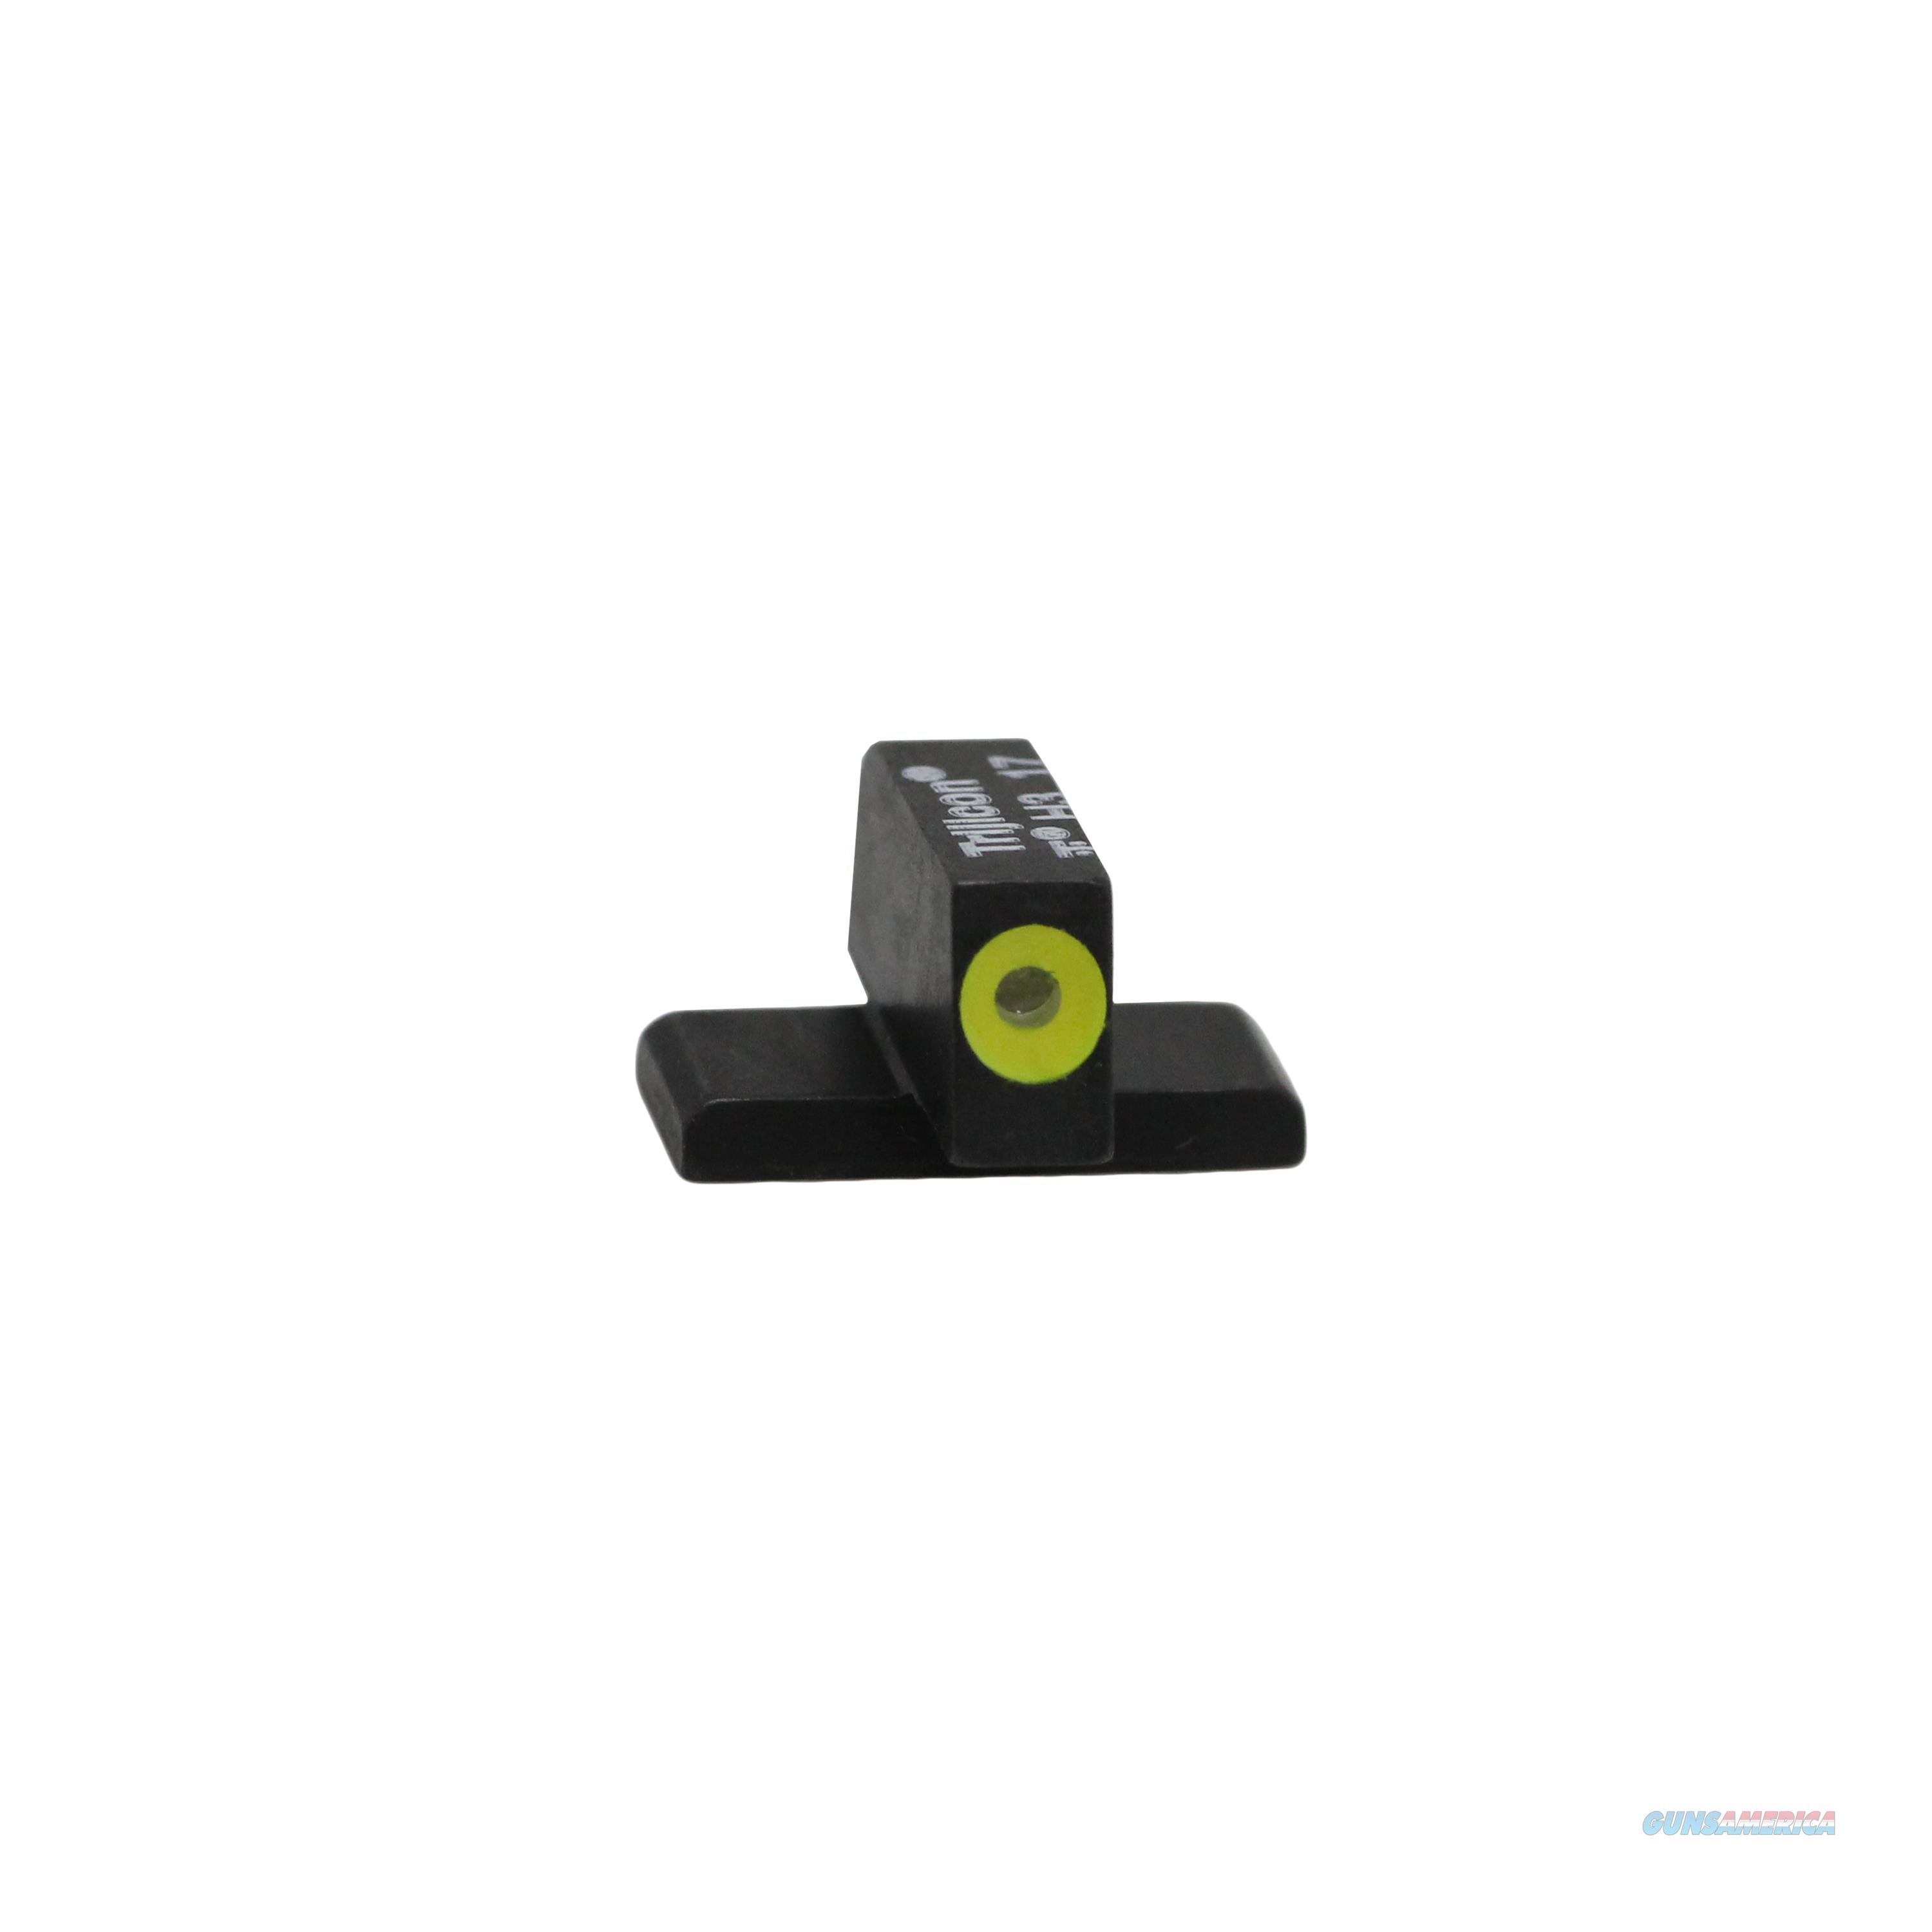 Trijicon Hd Xr Front Sight SP602-C-600877  Non-Guns > Iron/Metal/Peep Sights